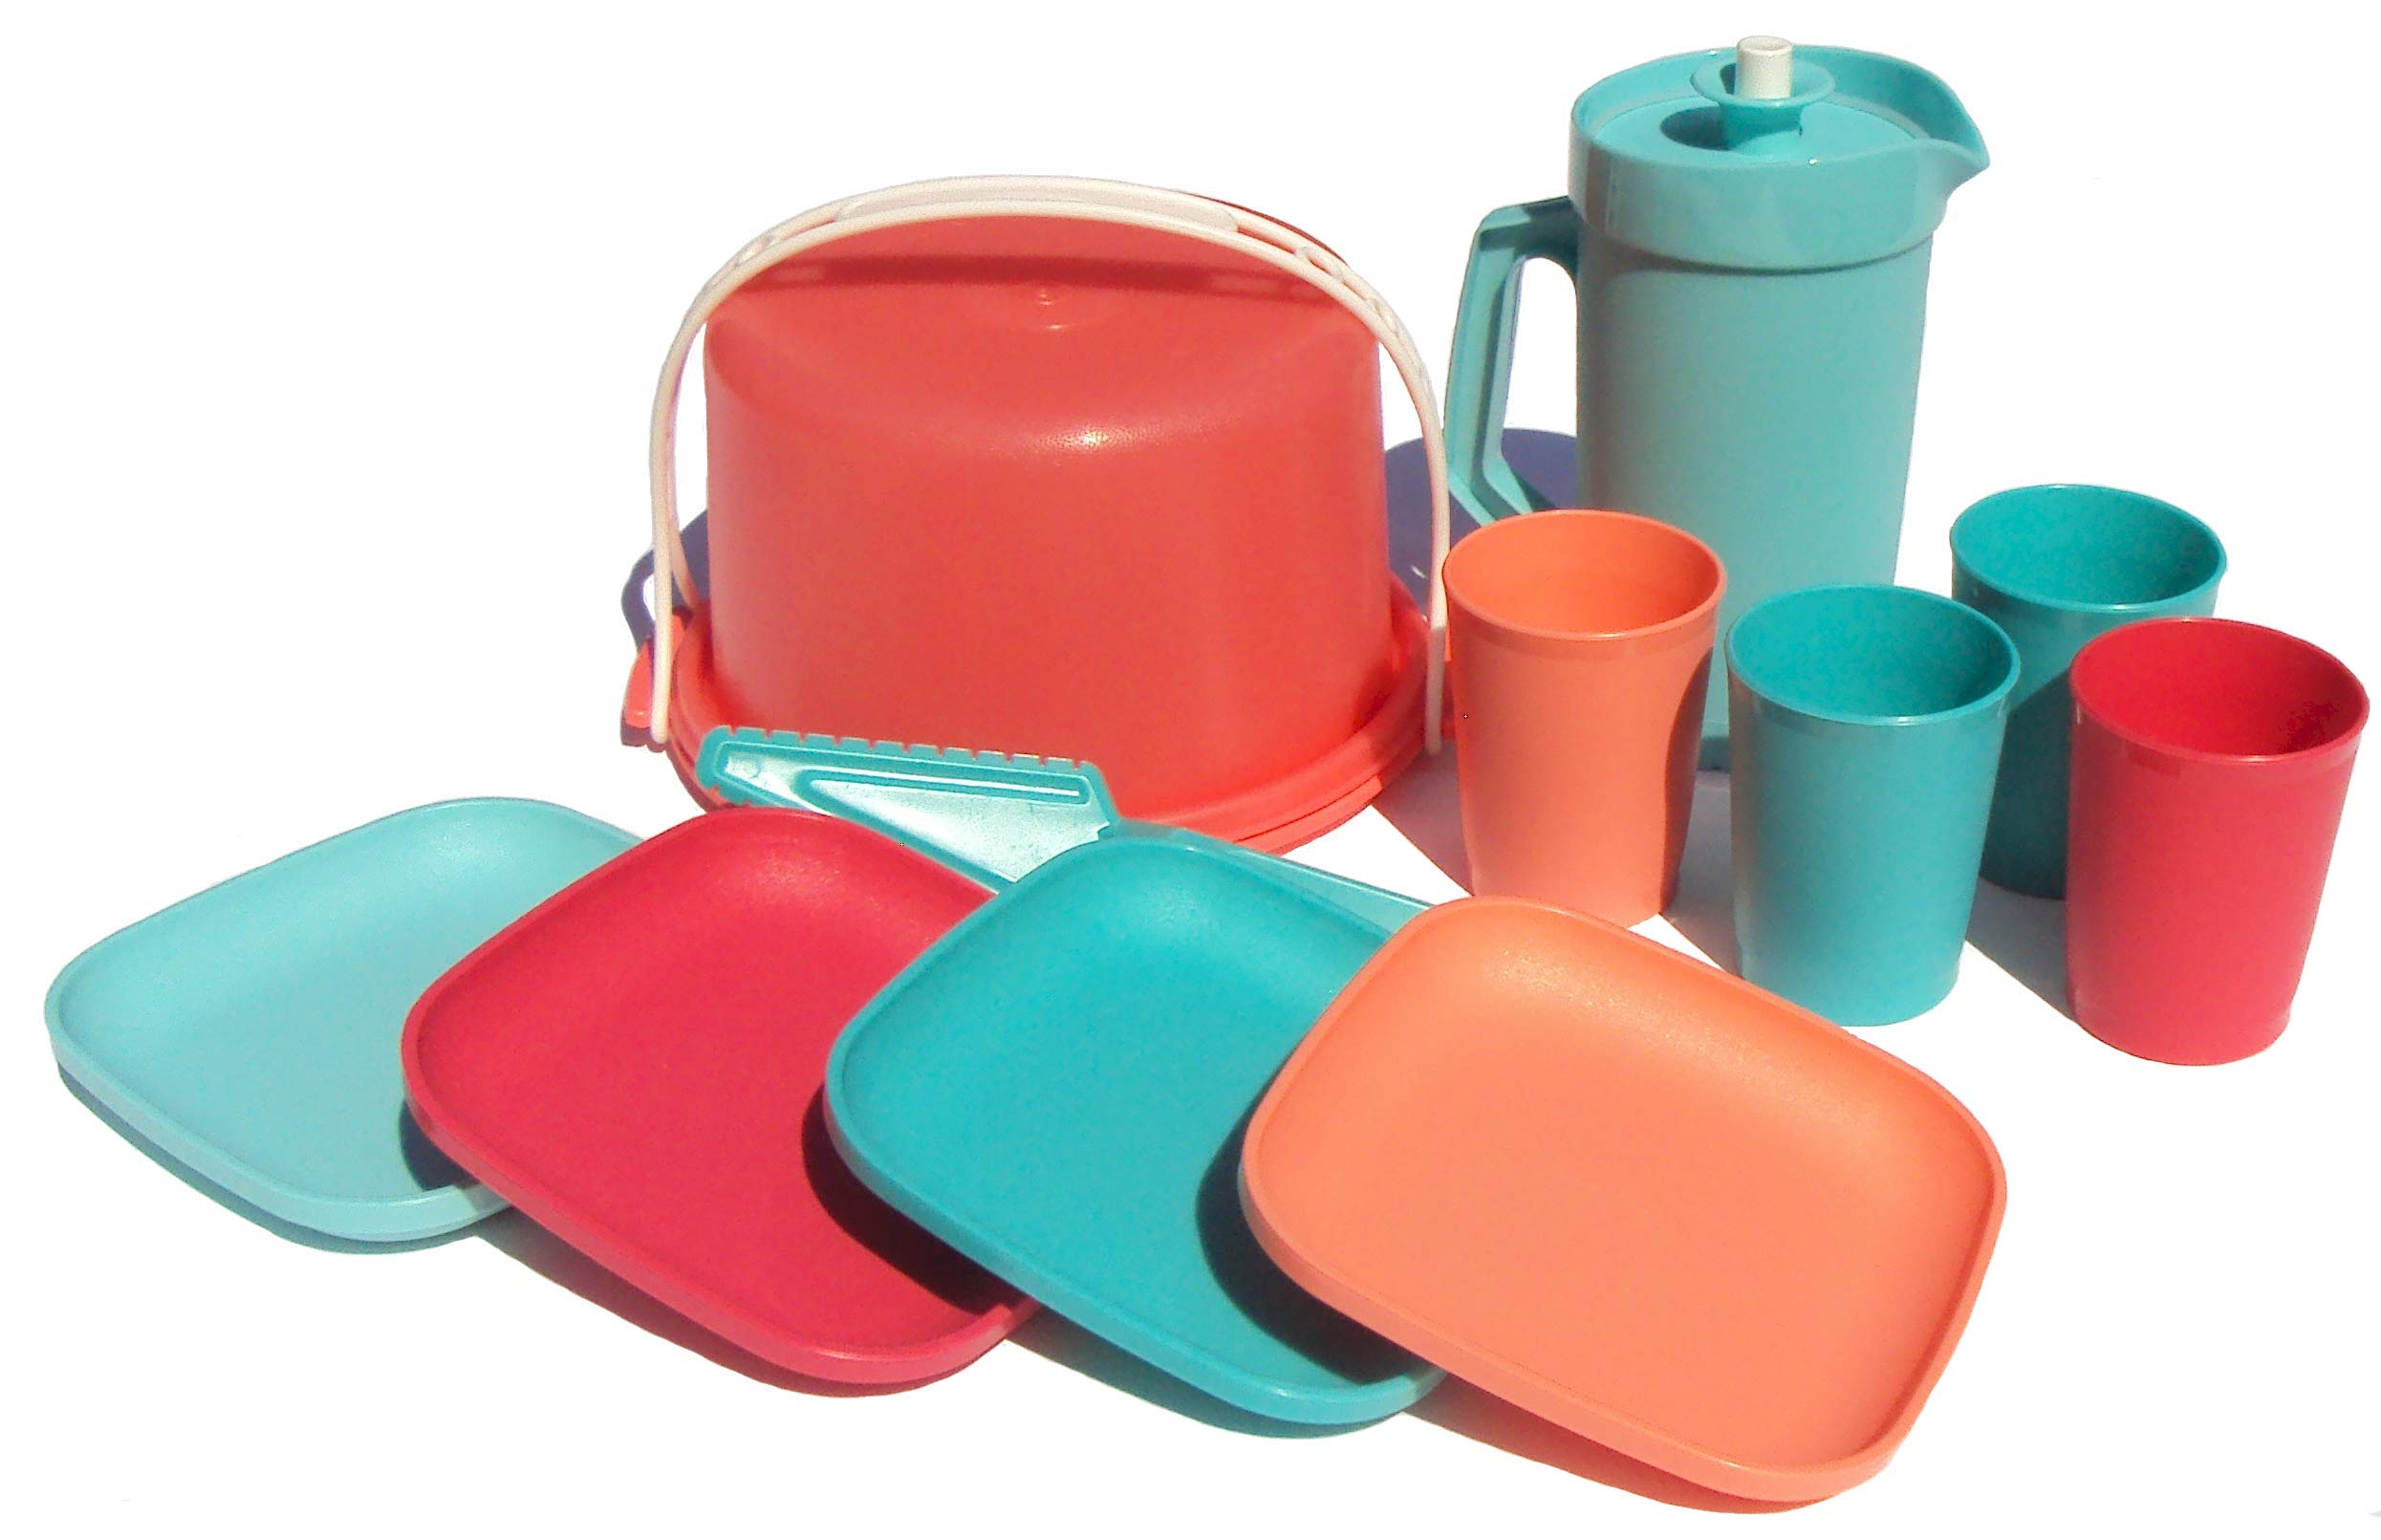 Tupperware Children's Mini Party Serving Set Play Toy Plates Cups Pitcher Cake Taker